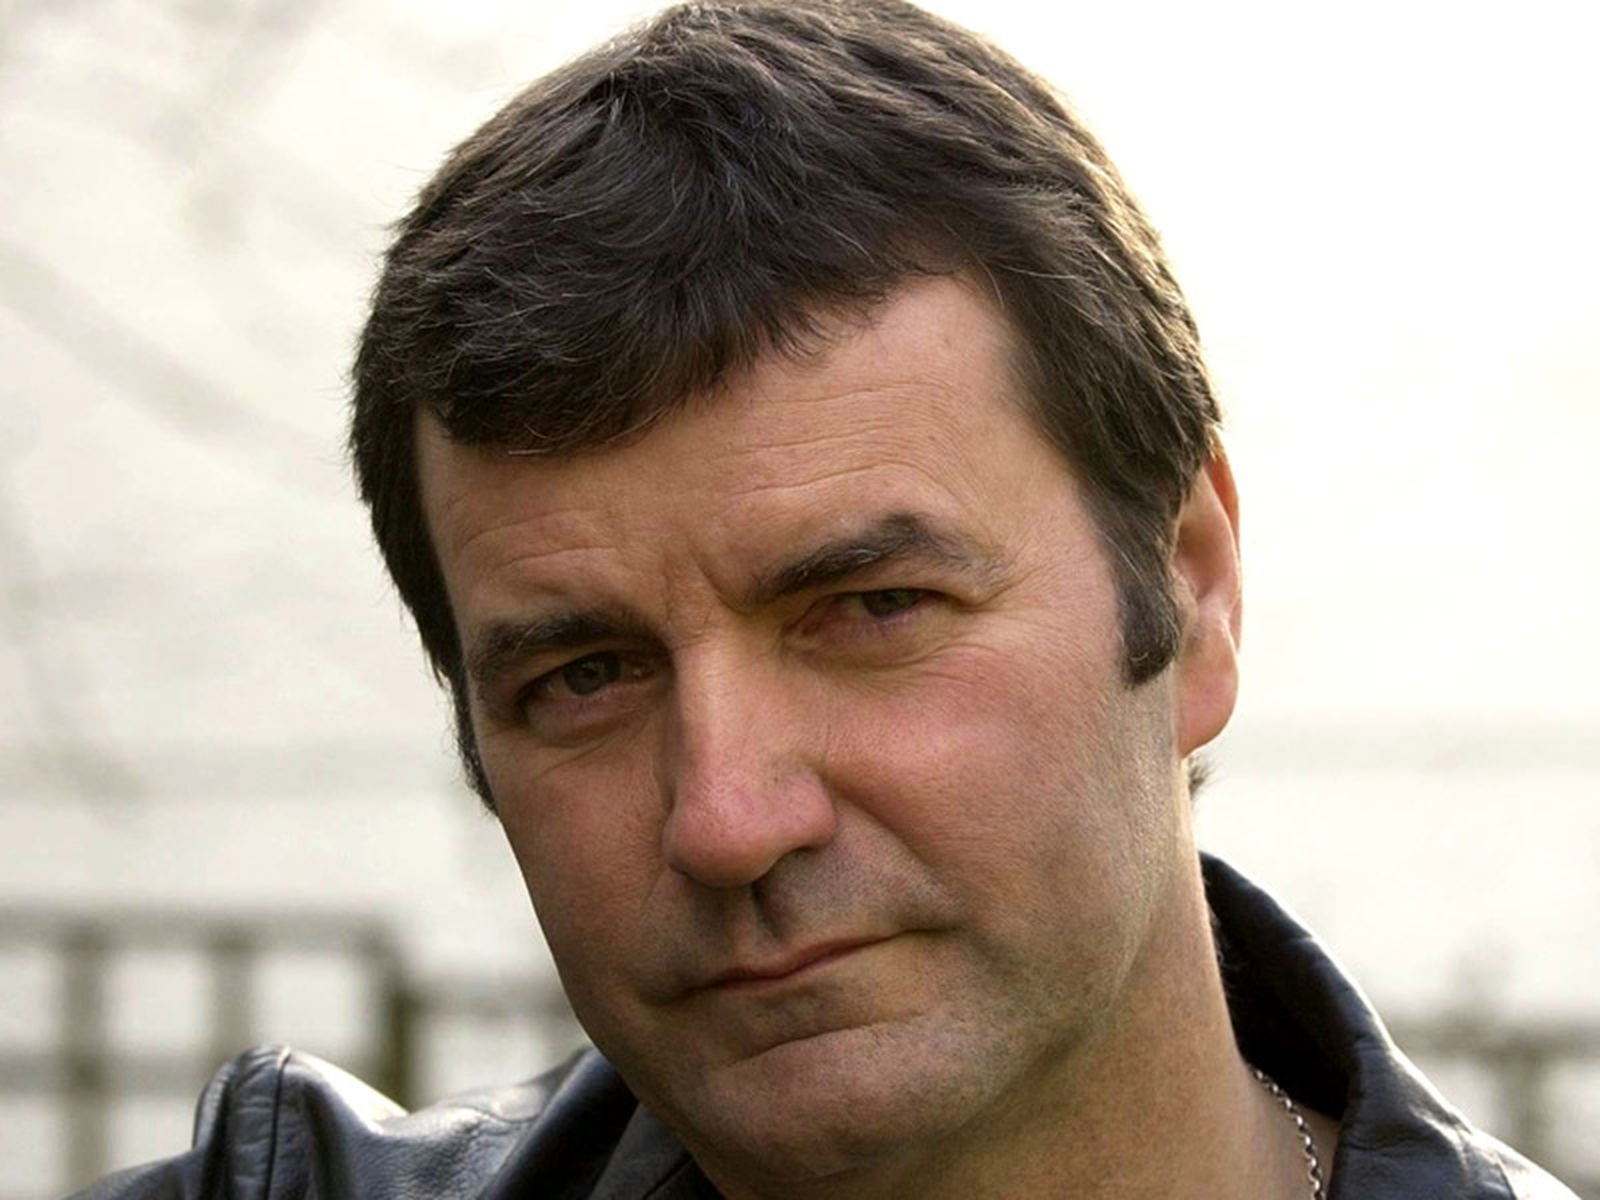 Tony O'Callaghan - Actor